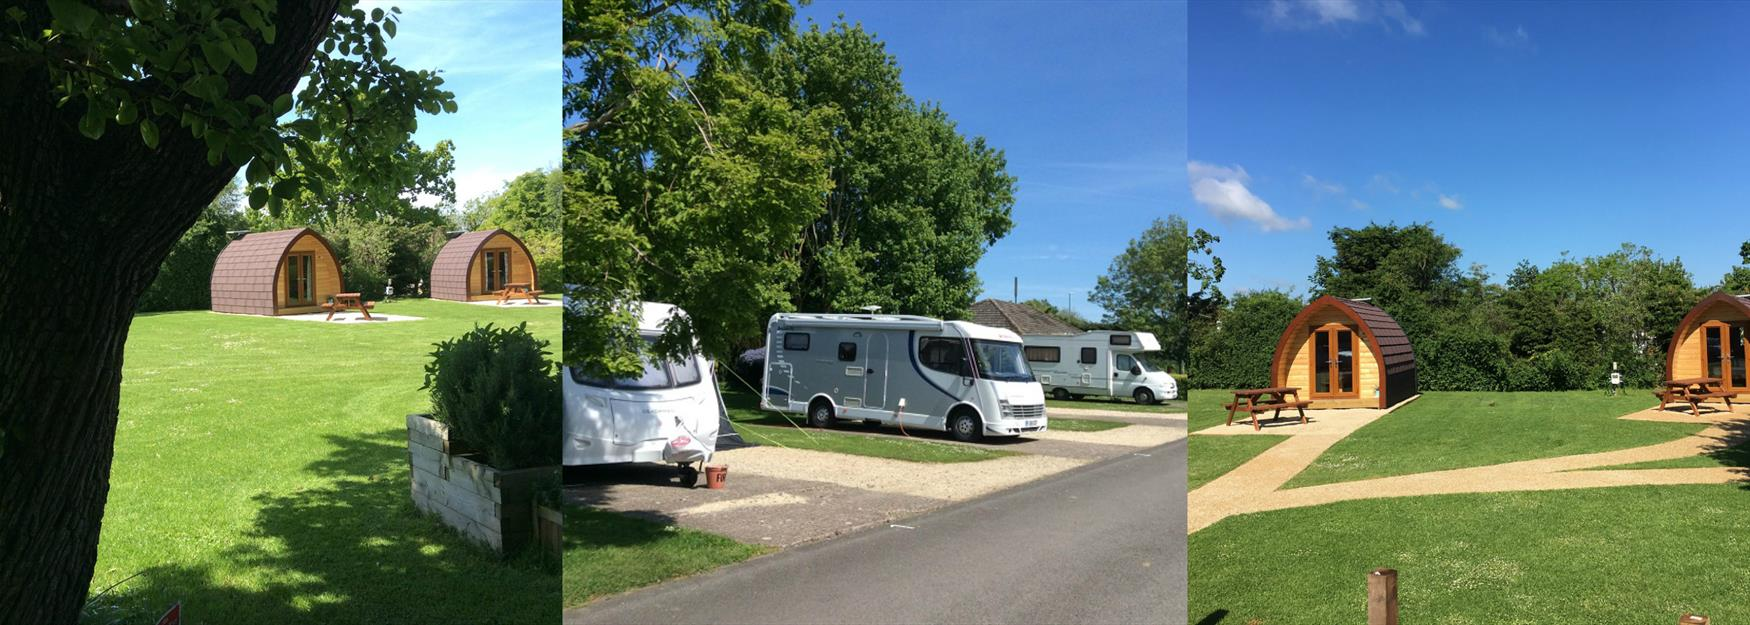 Collage of campsite facilities in Cheltenham, including caravan sites and camping pods